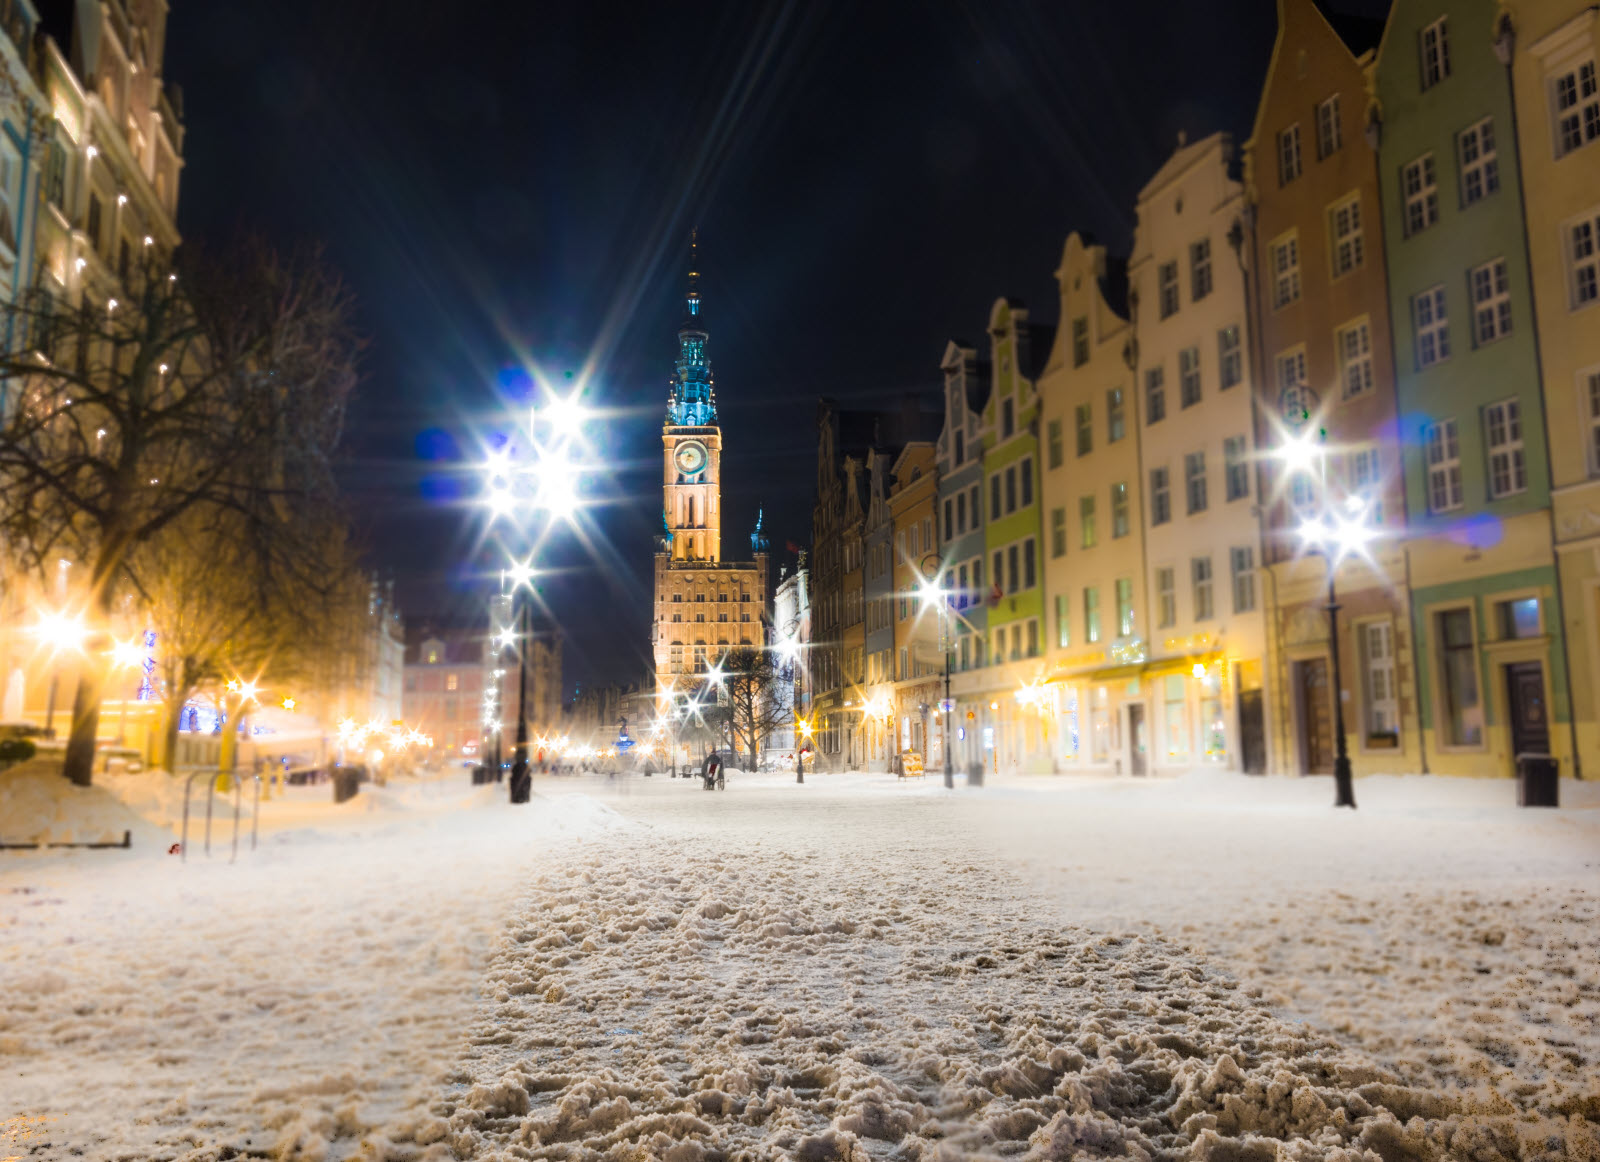 Town Hall of the Main City (Polish: Ratusz) in Gdansk Danzig Poland Europe, built in Gothic and Renaissance architectural styles. Long Street Market. Winter snow night scenery